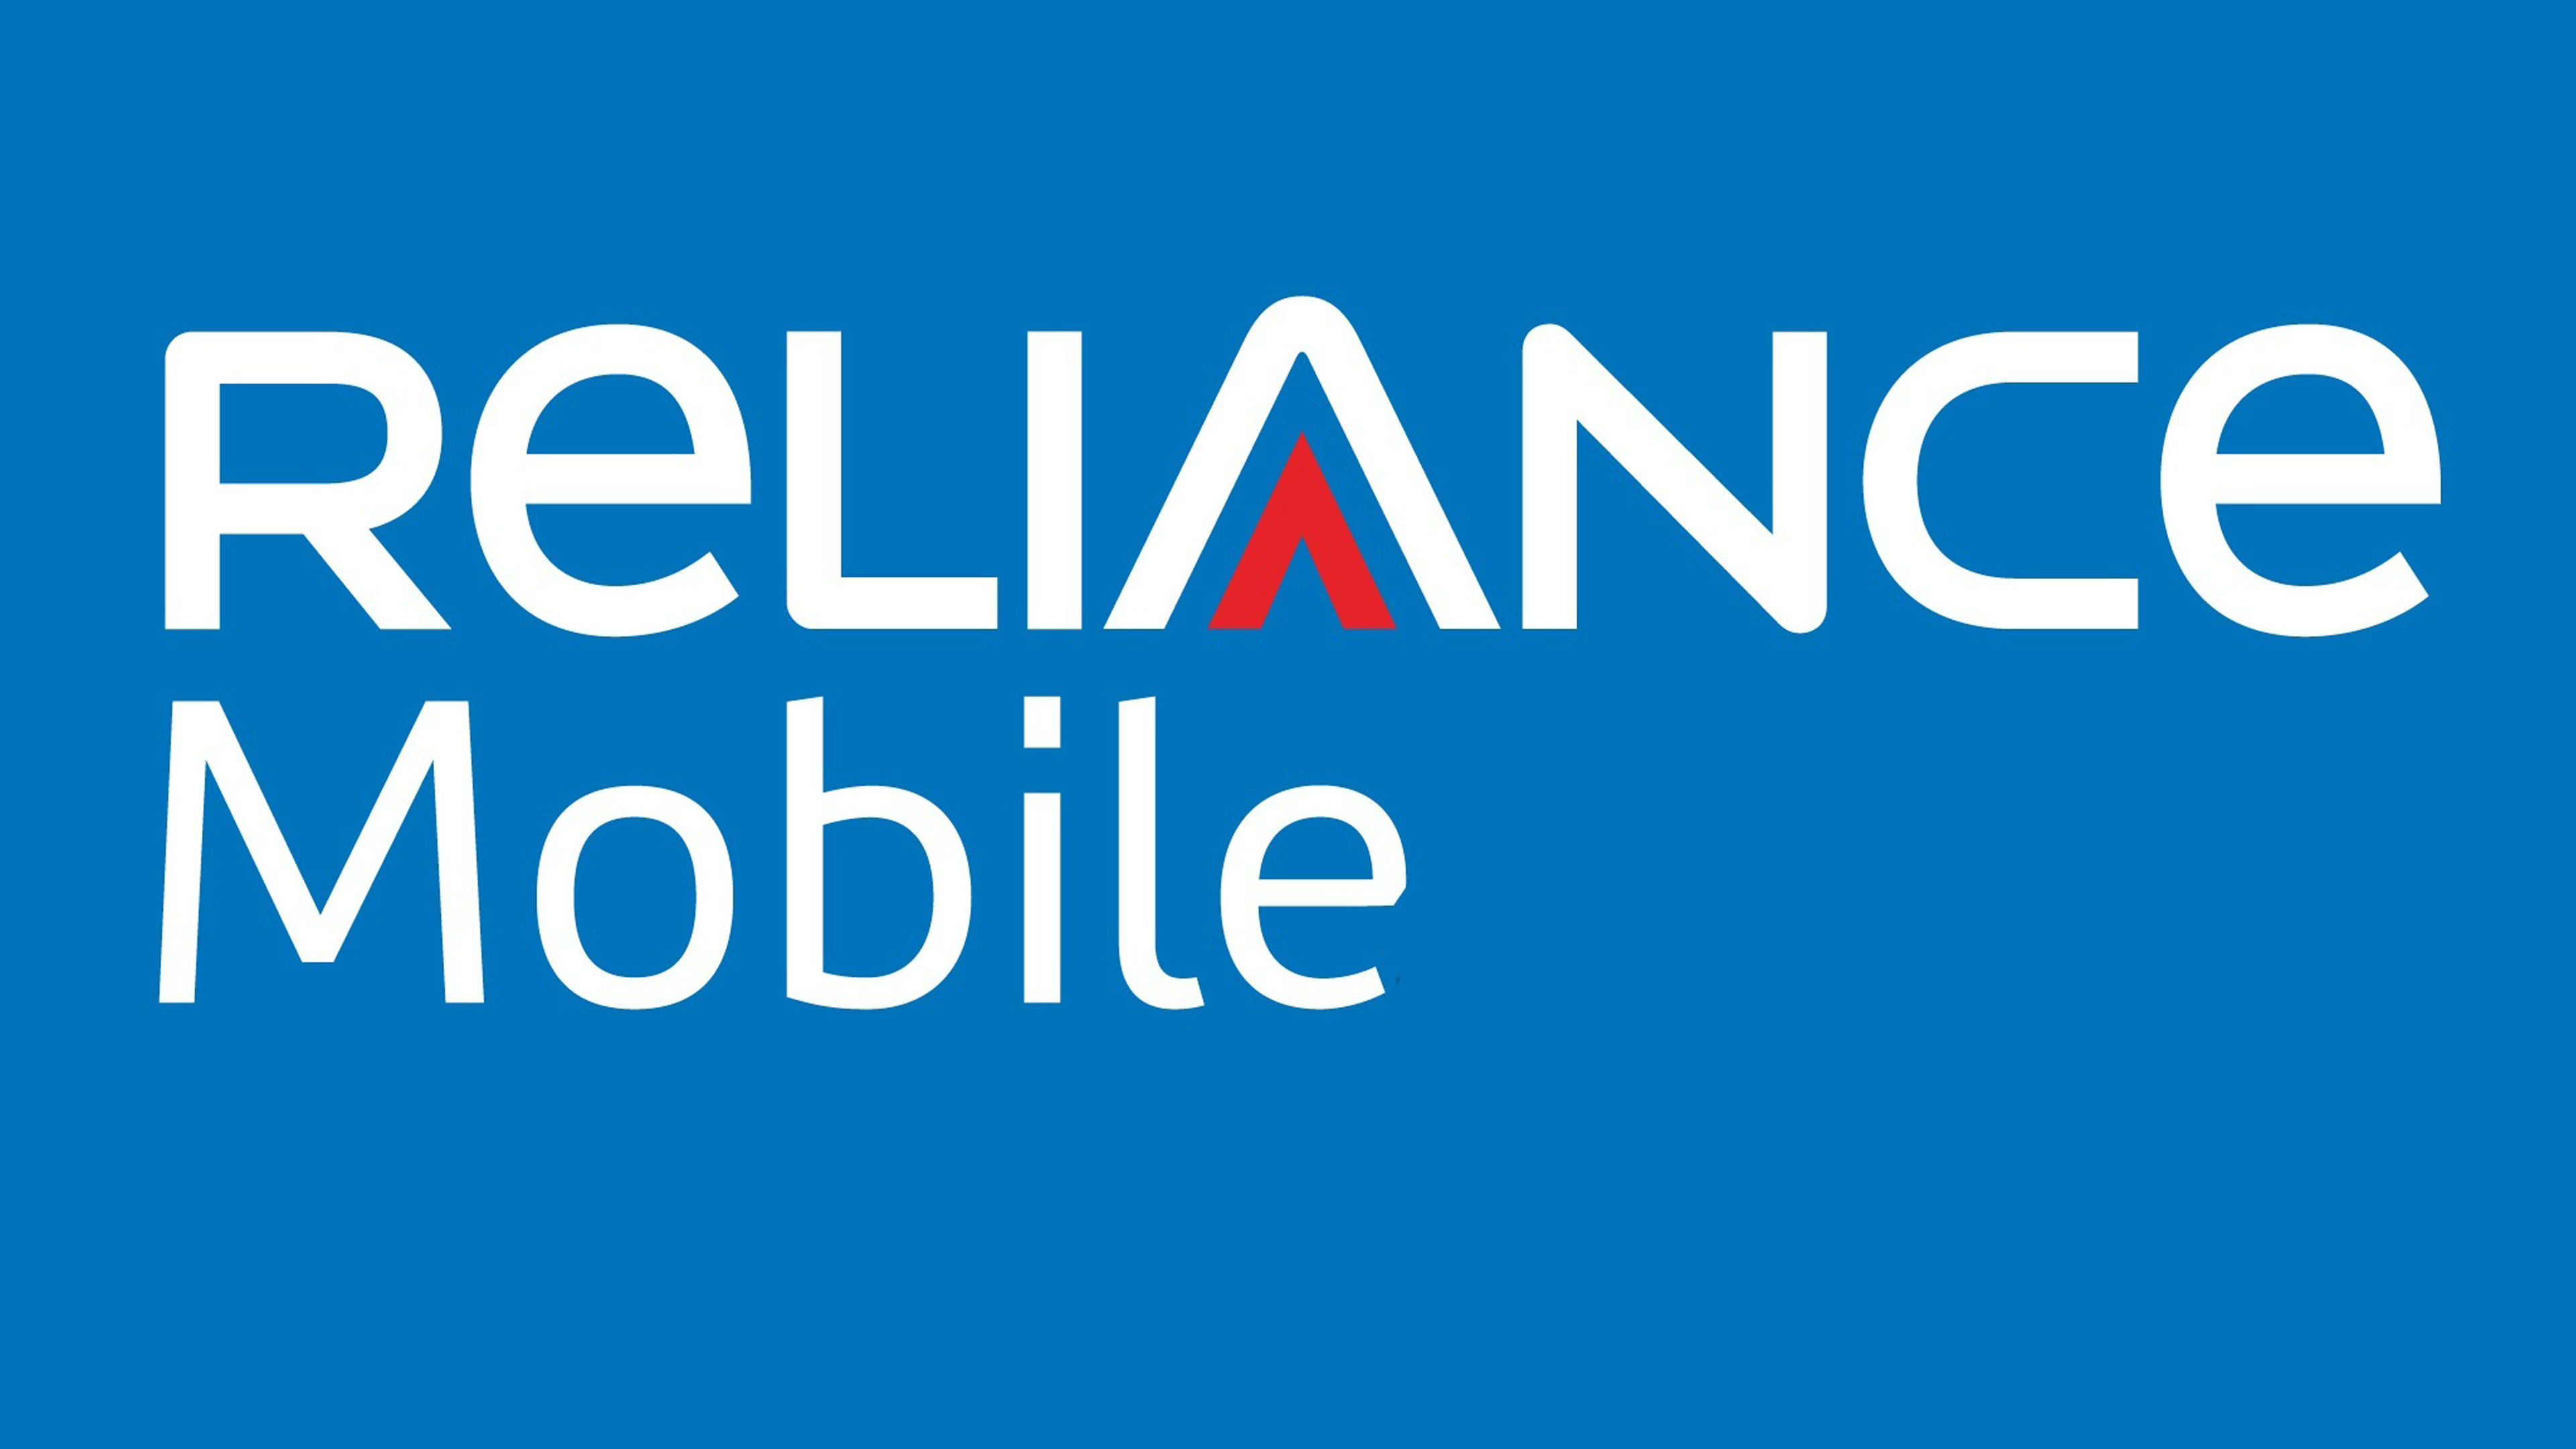 Reliance Com's announces app-to-app voice calling plans for Apps like Whatsapp, Skype, Viber and many more